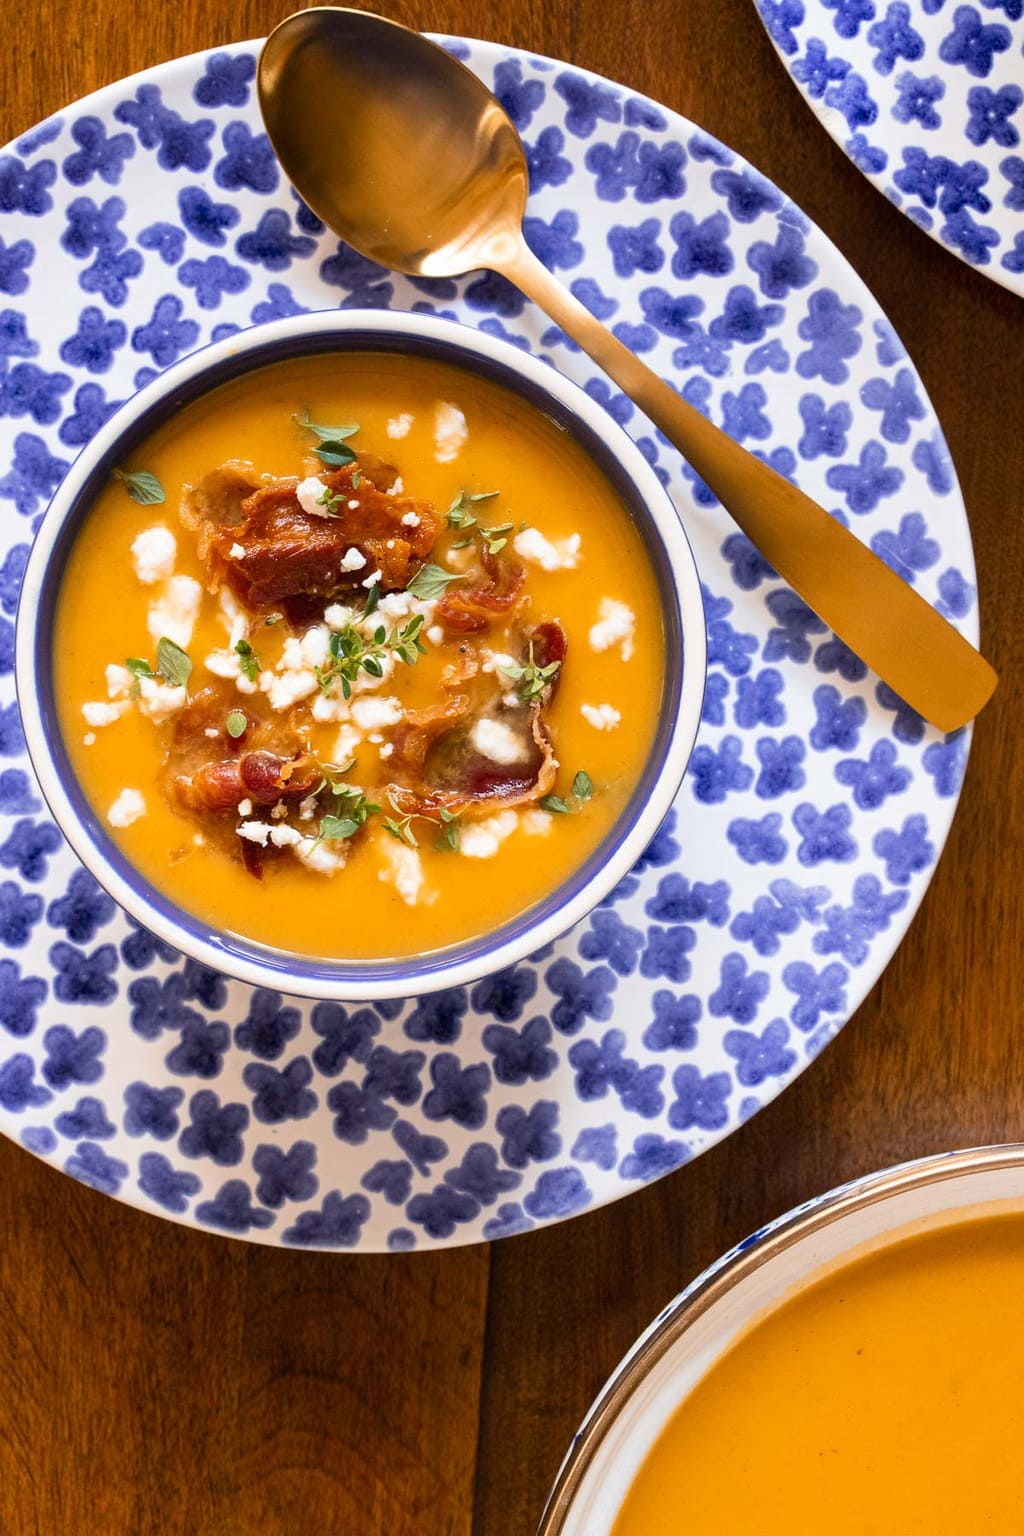 Overhead vertical closeup photo of Roasted Butternut Squash Soup with crispy pancetta and feta cheese on top on a blue and white patterned plate and bowl.